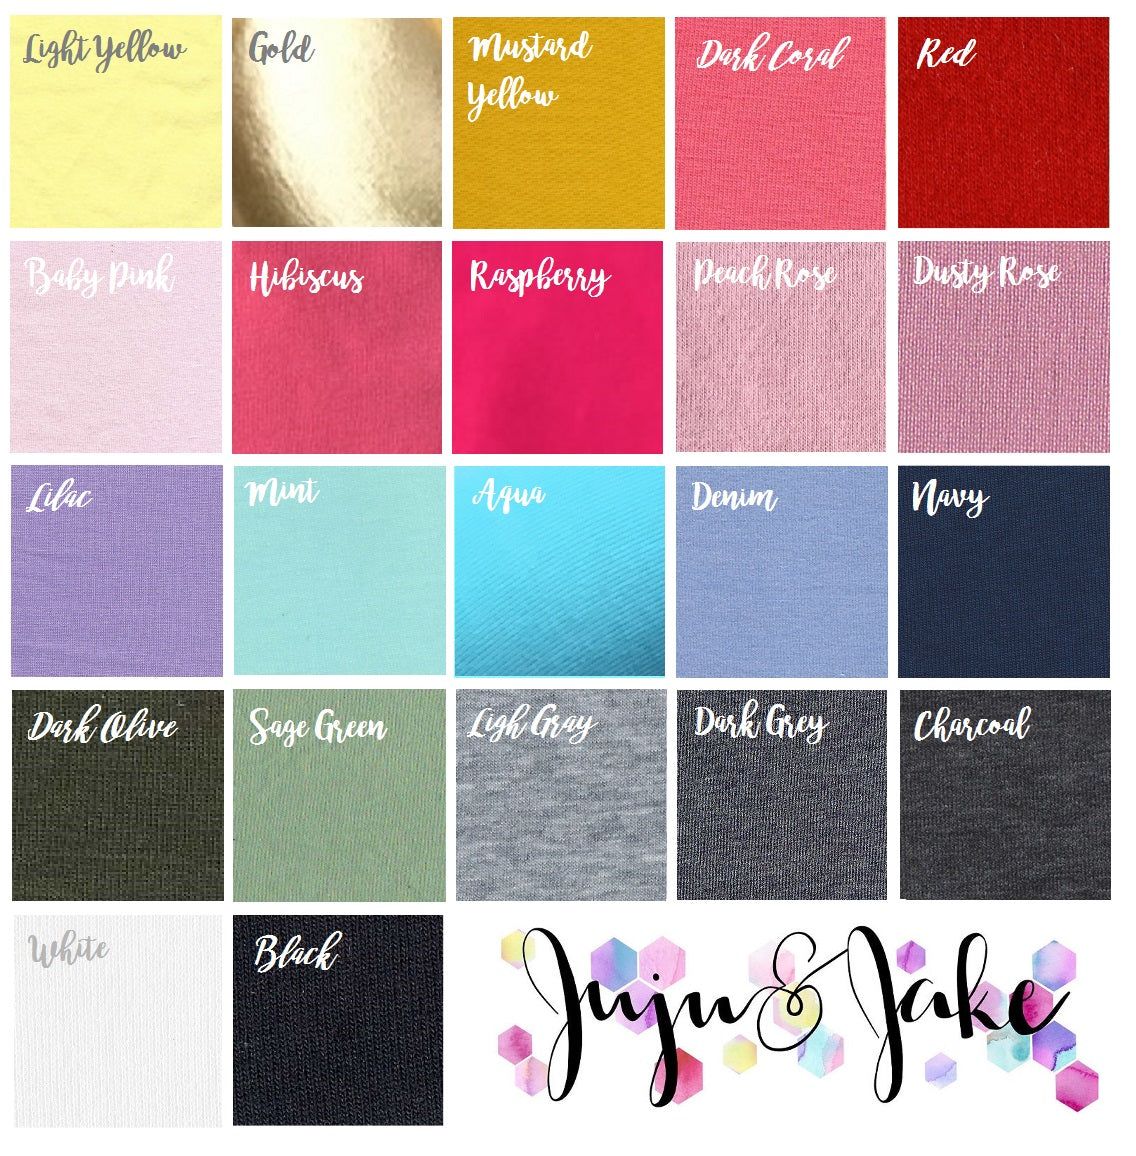 Color Chart | Kids Floor Knot Cushion / Floor Pillow - See more Knot Pillows & Cushions at JujuAndJake.com